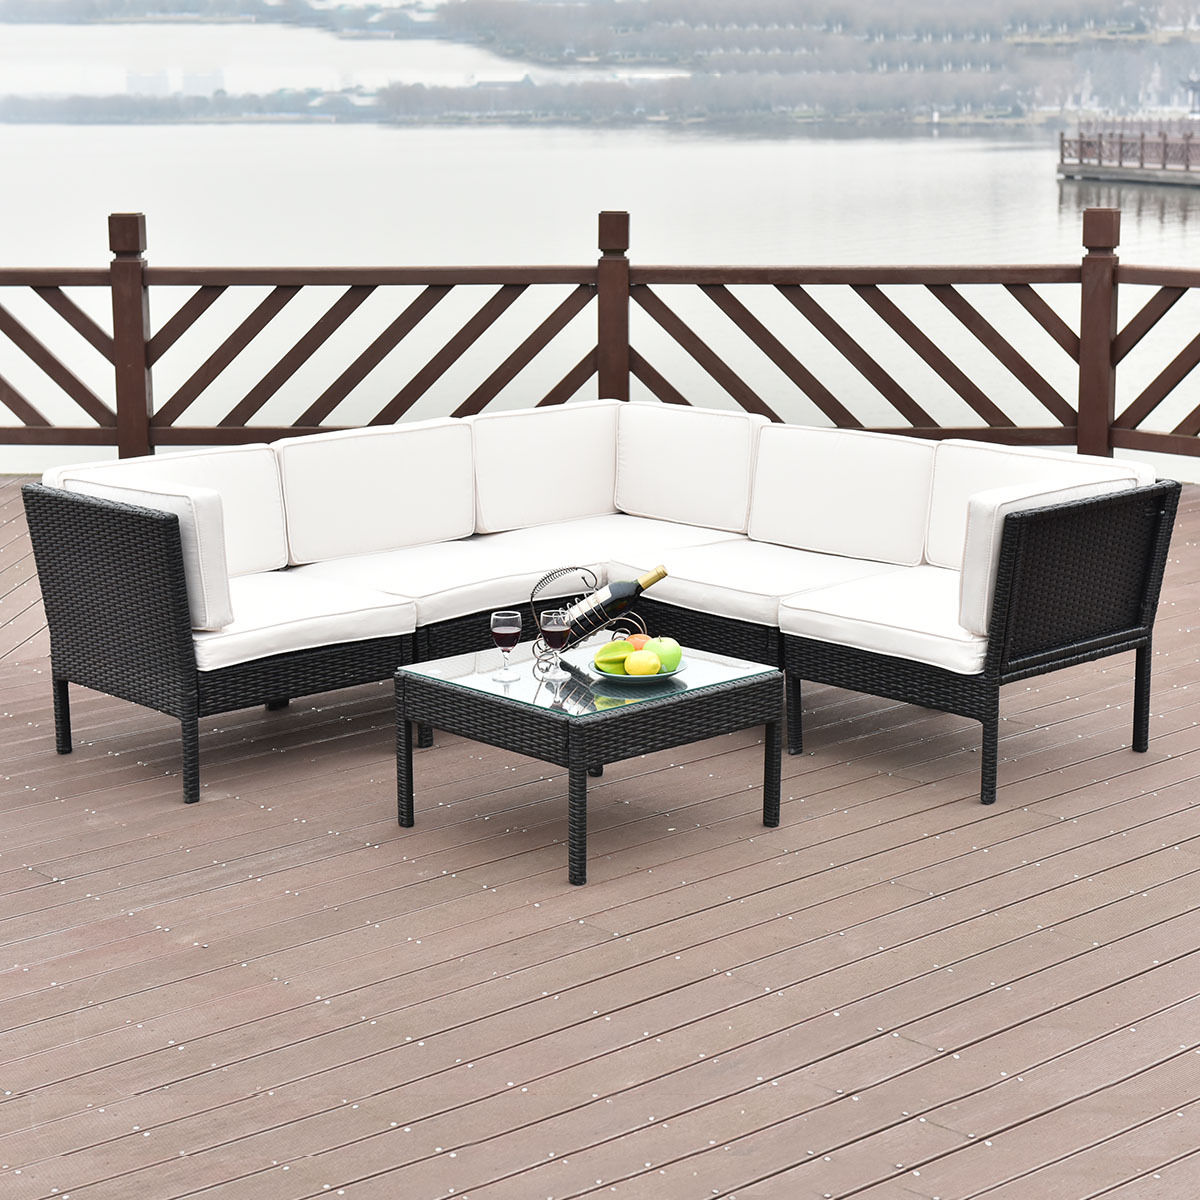 6 PCS Rattan Wicker Patio Furniture Sectional Set